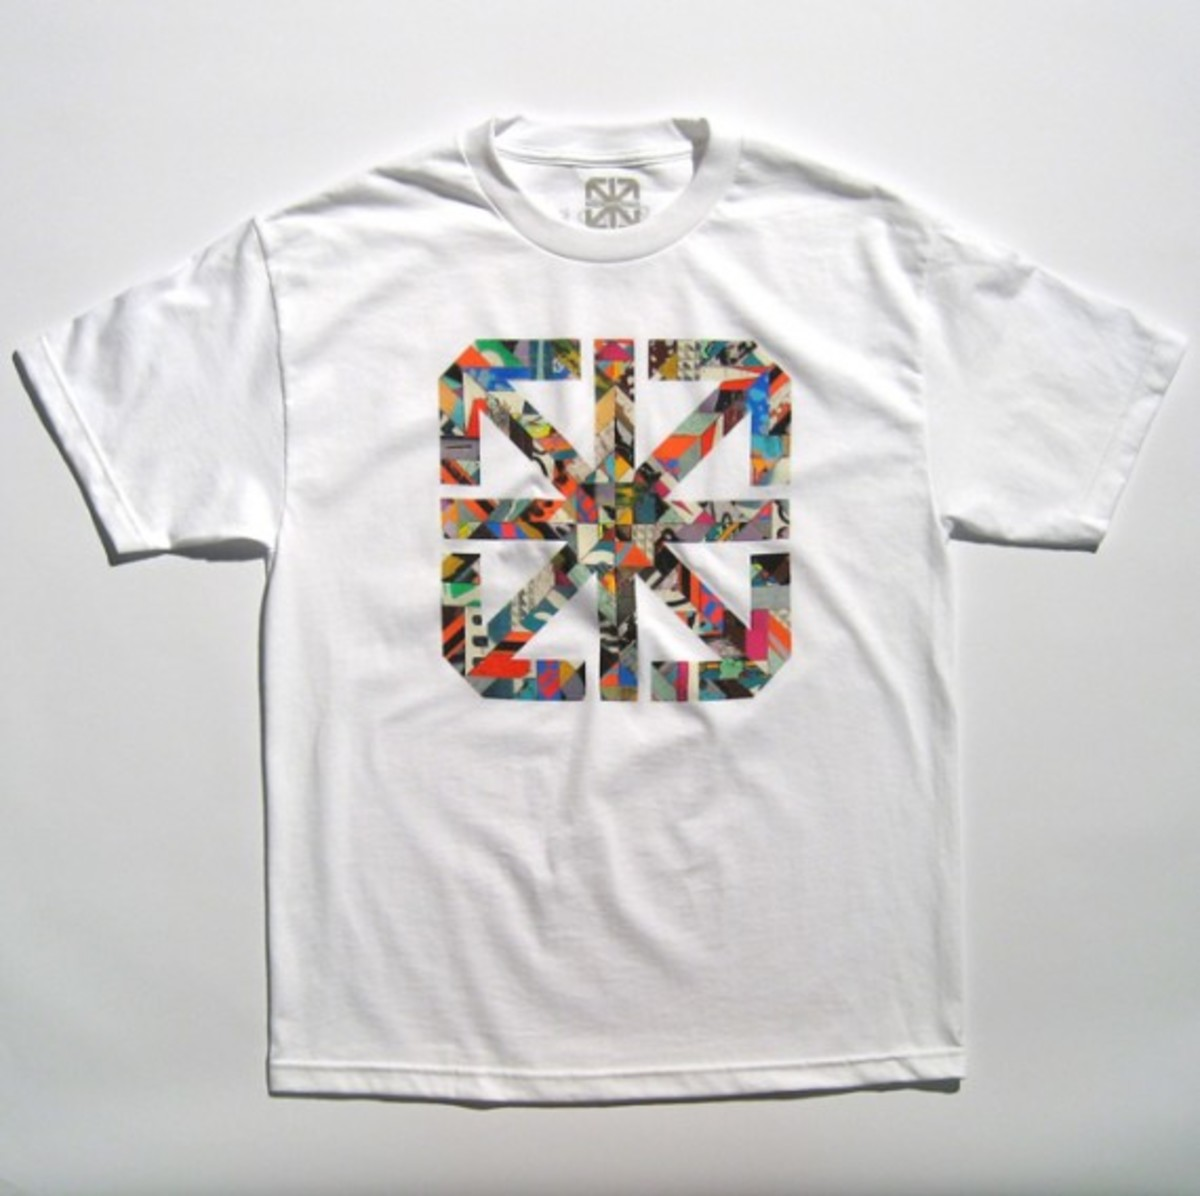 the-seventh-letter-revok-ordinary-things-t-shirt-01